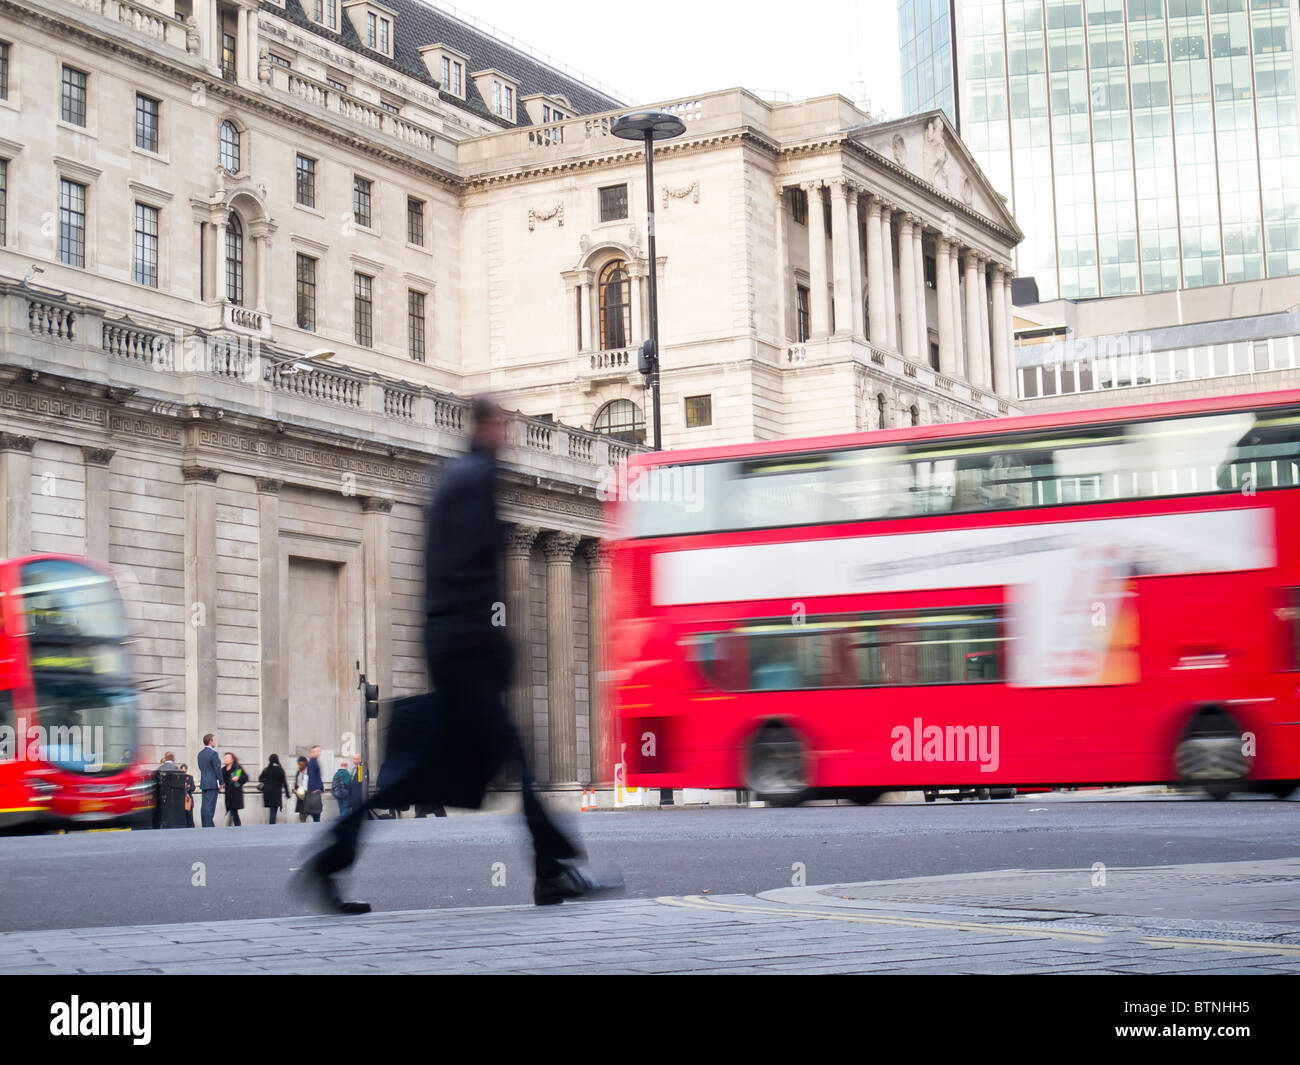 Motion blur traffic and people outside the Bank of England, City of London - Stock Image